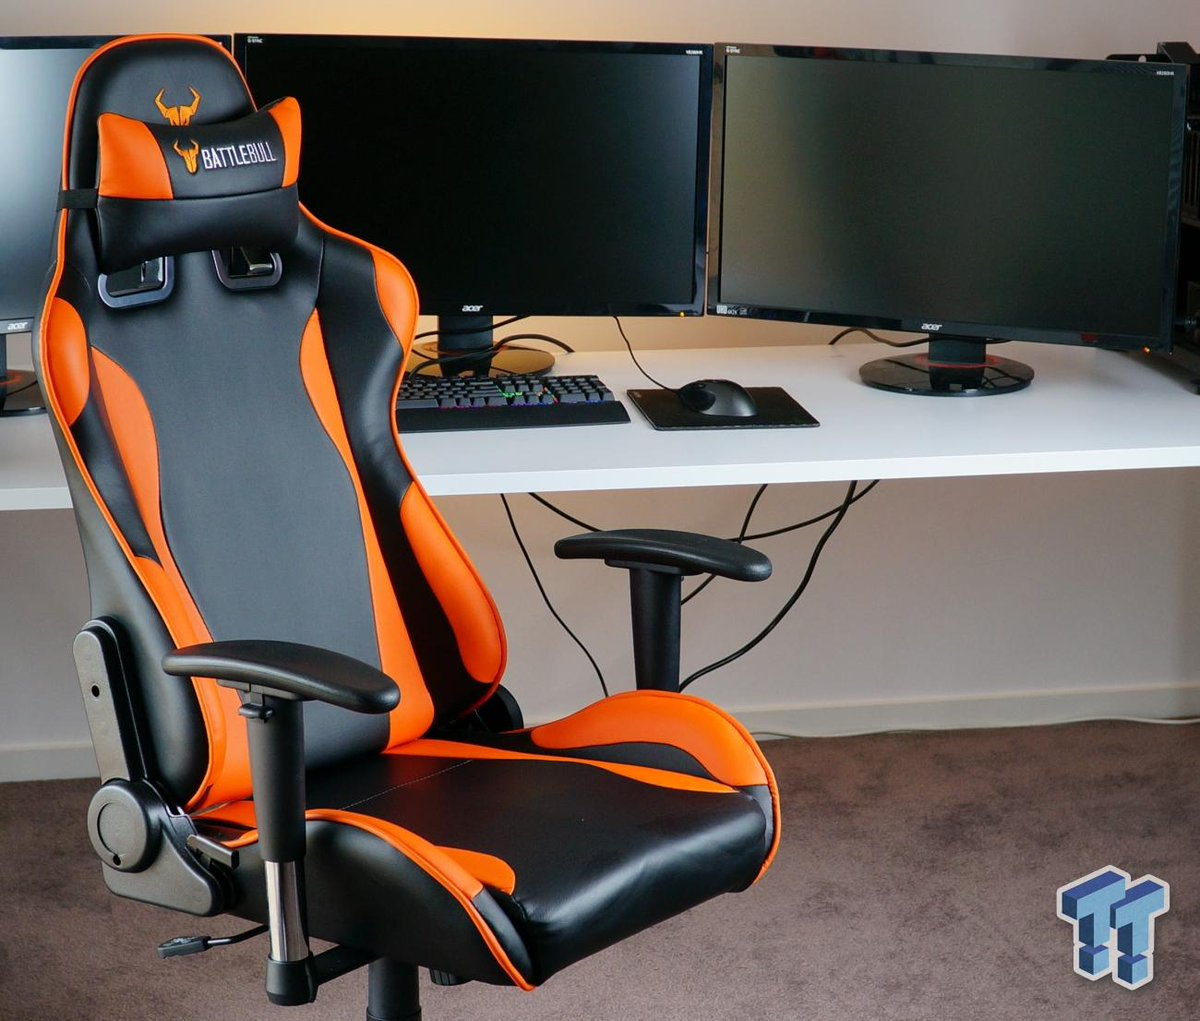 We take a look at the #Battlebull Combat Gaming Chair - super comfortable!  & We take a look at the #battlebull combat gaming chair - super ...